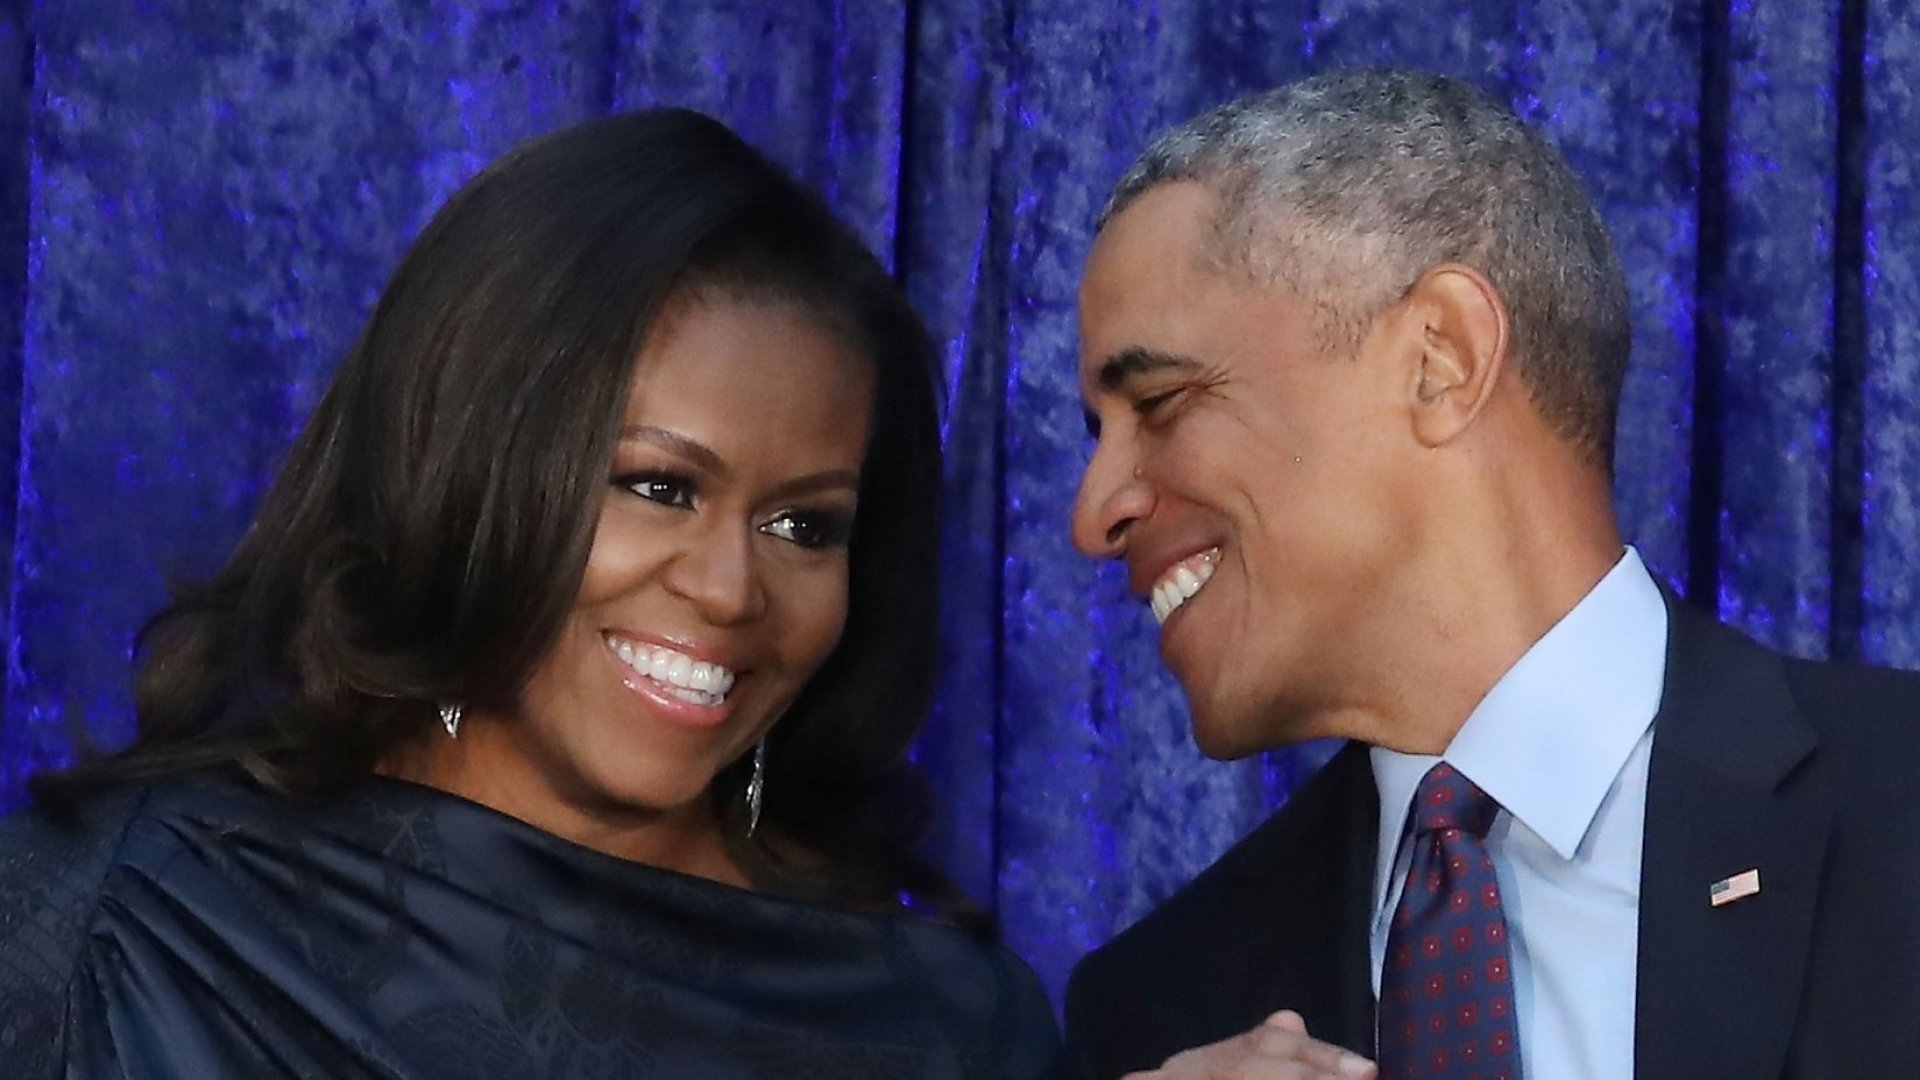 The Obamas Signed a Multi-Year Deal With Netflix, and Every Entrepreneur Should Learn This 1 Lesson From It